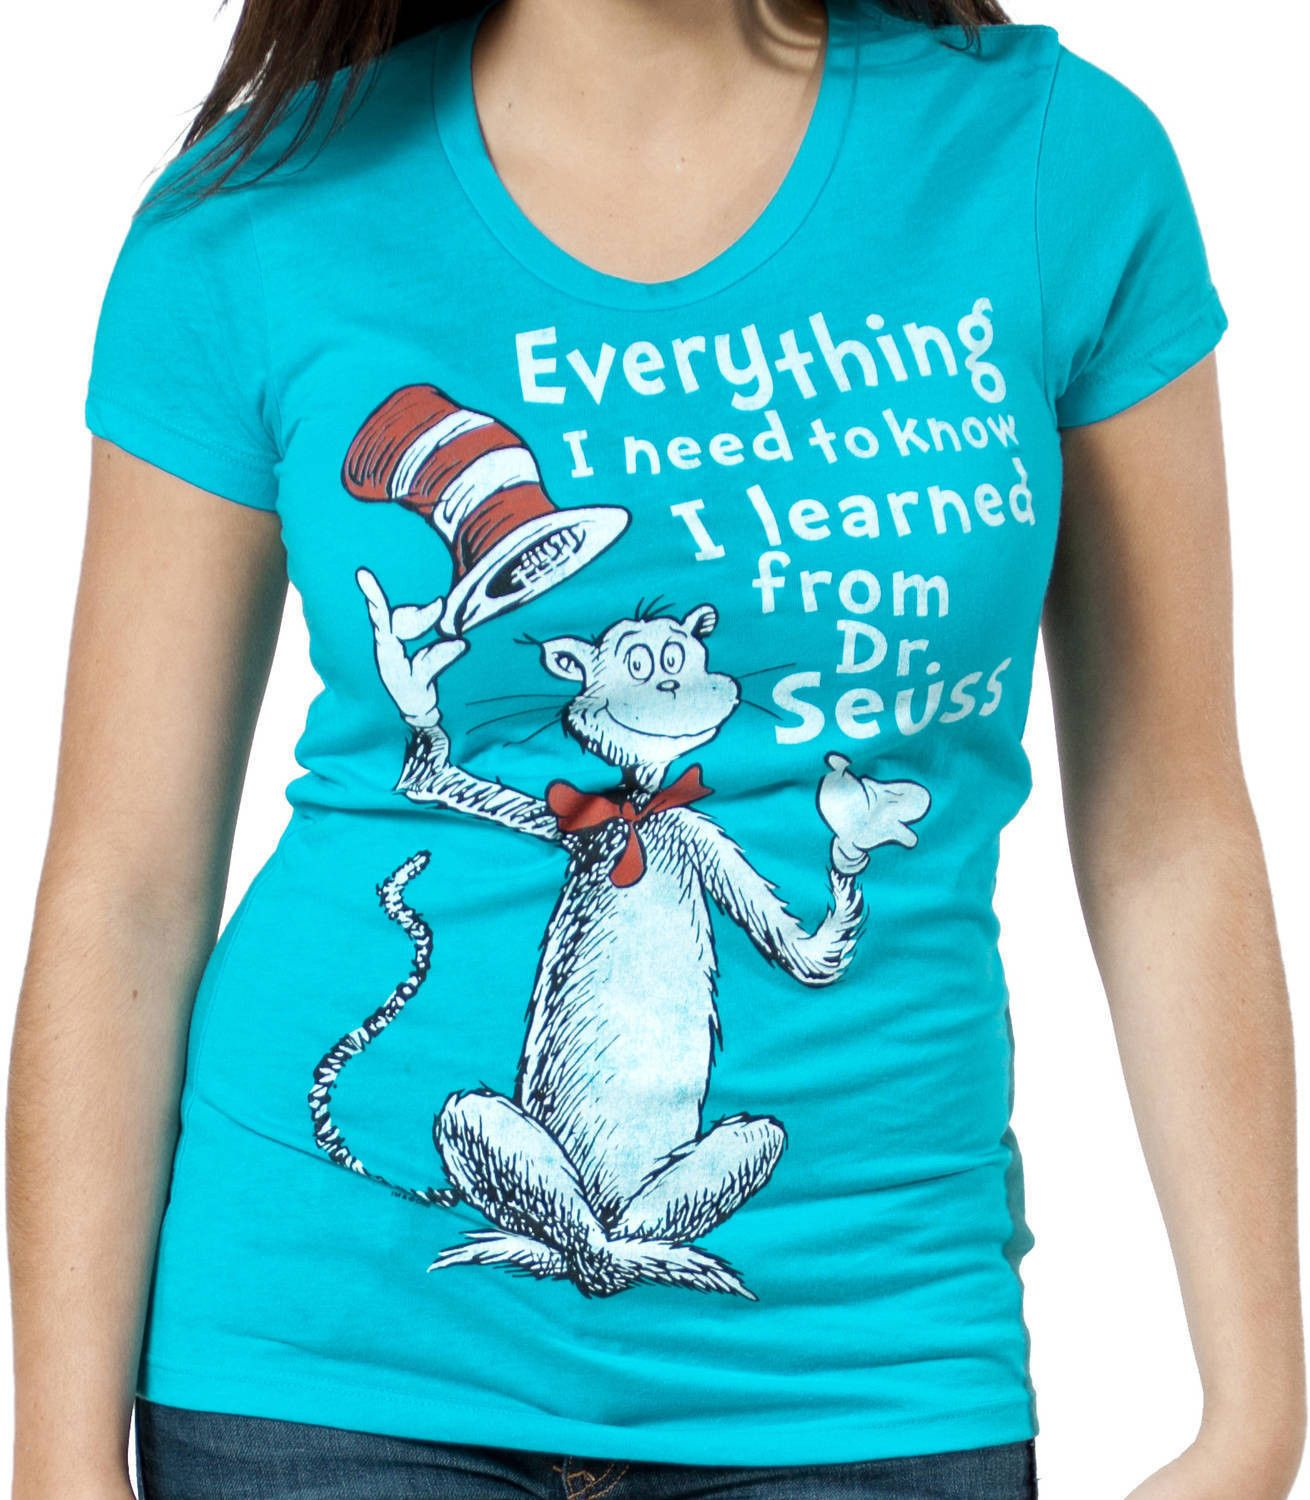 Learned From Dr Seuss T-Shirt | Decoraciones cumpleaños, Cumpleaños ...